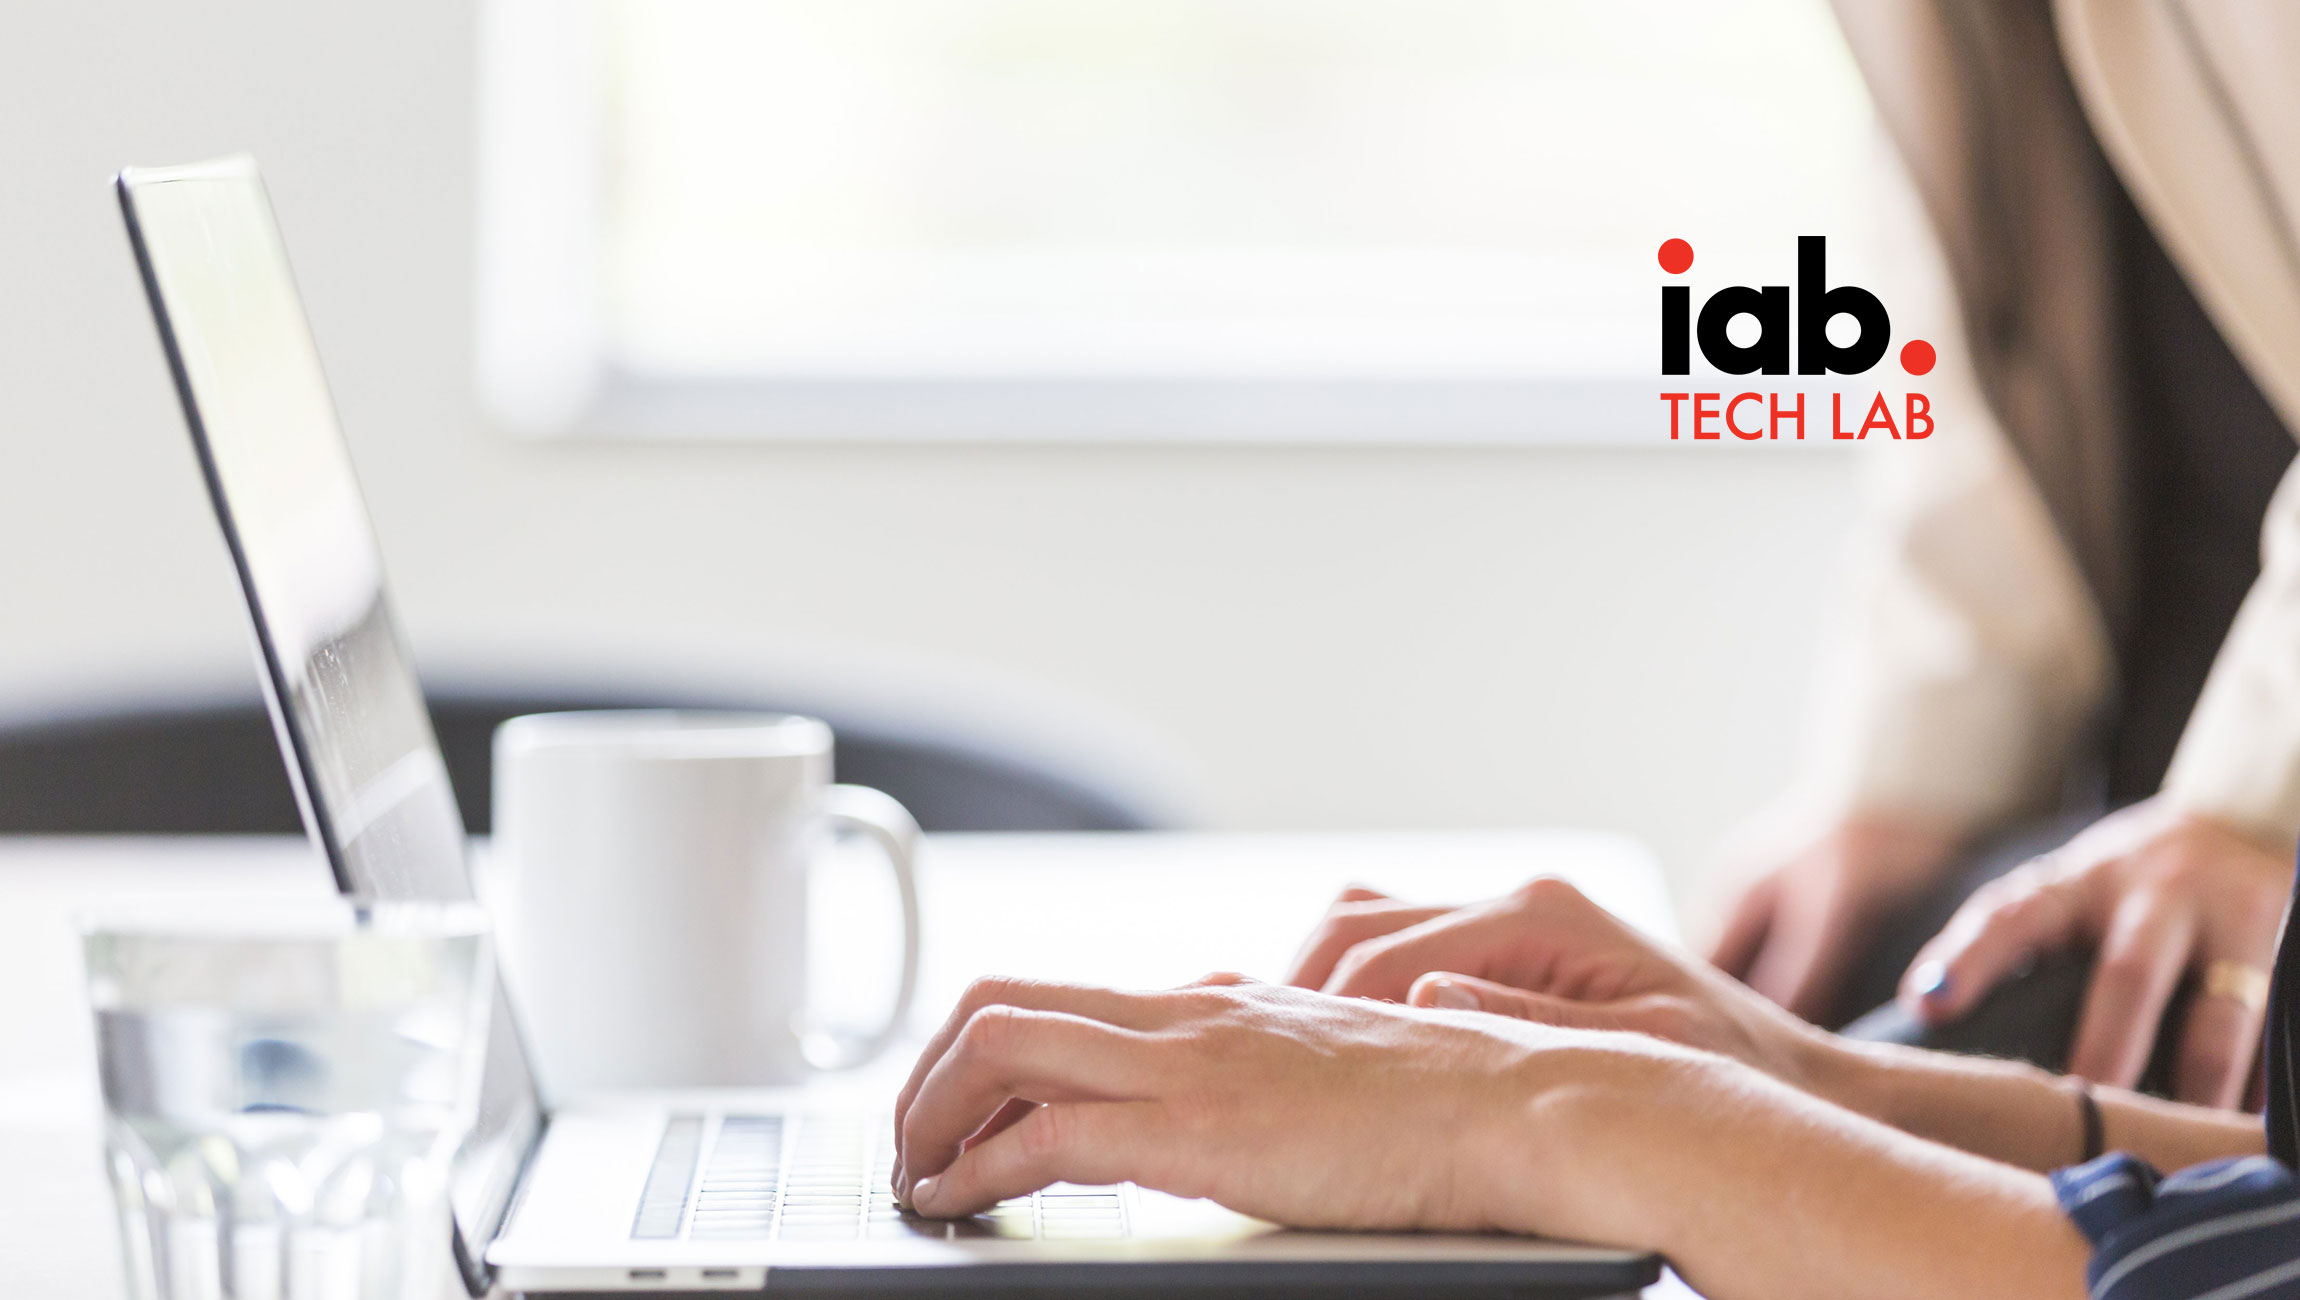 IAB Tech Lab Launches Phase Two of OpenRTB 3.0 Public Comment, Releasing Tech Specifications & Kicking-off Beta Tests